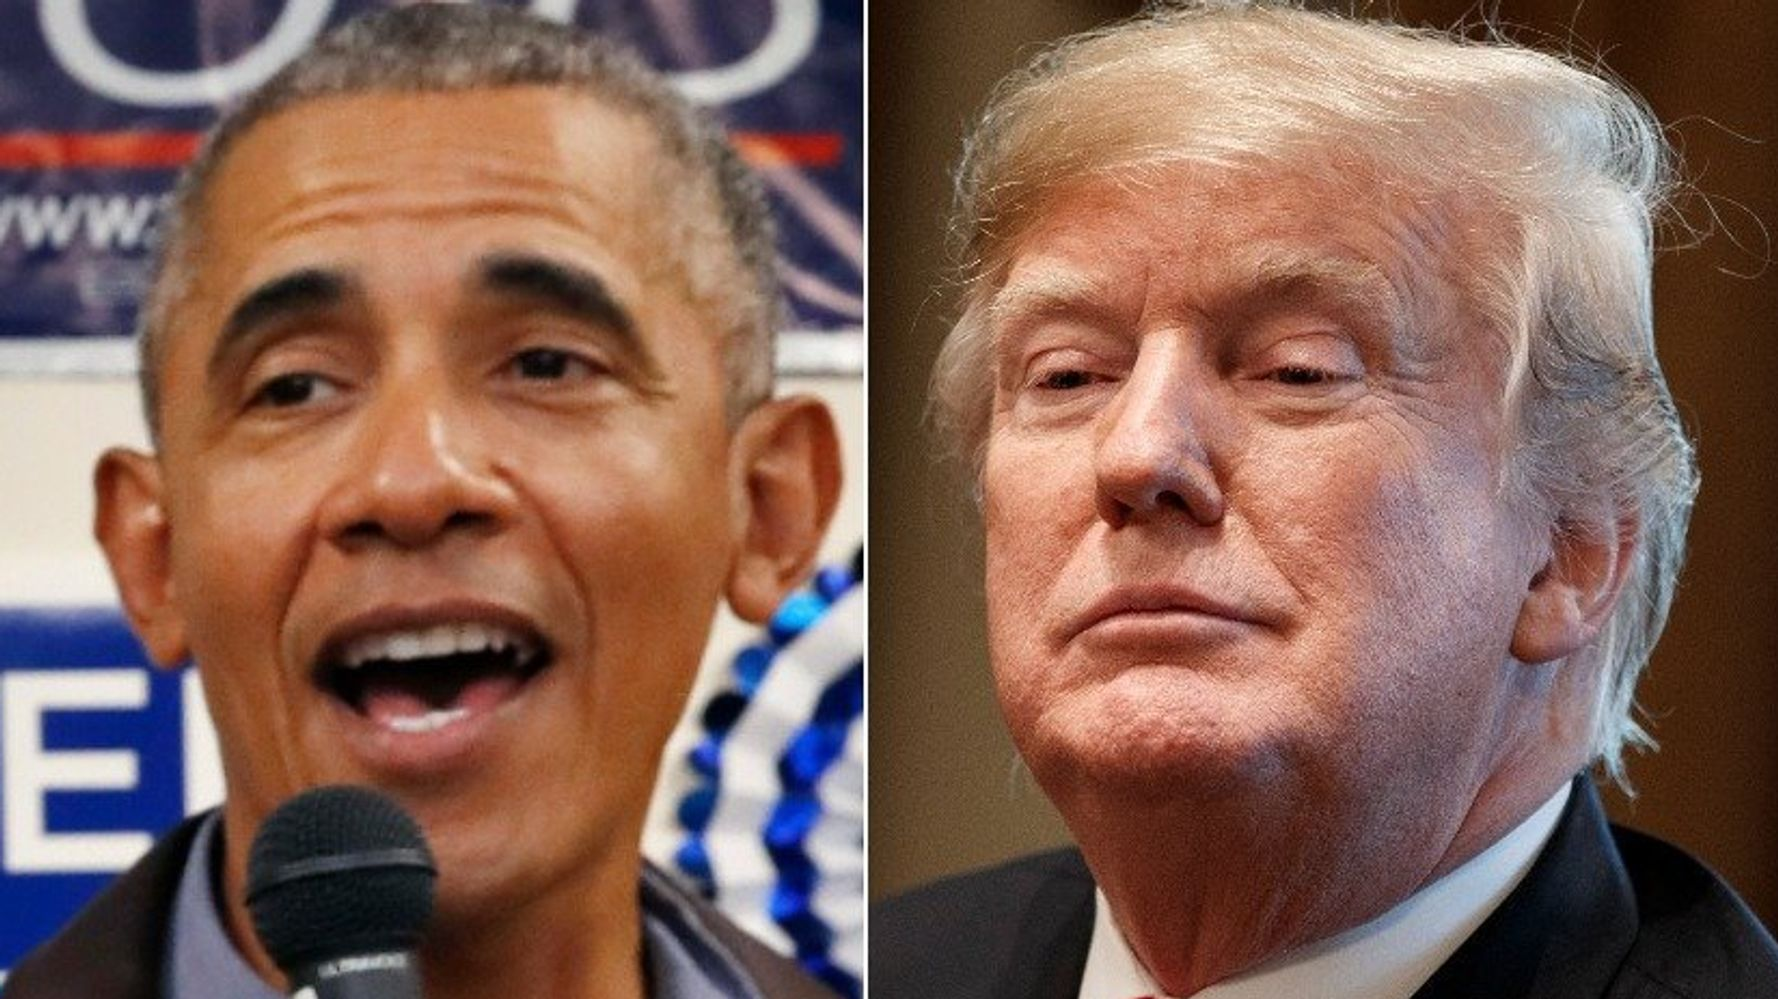 Obama Takes Rare Swipe At Trump By Naming 2 Things A President Shouldn't Do